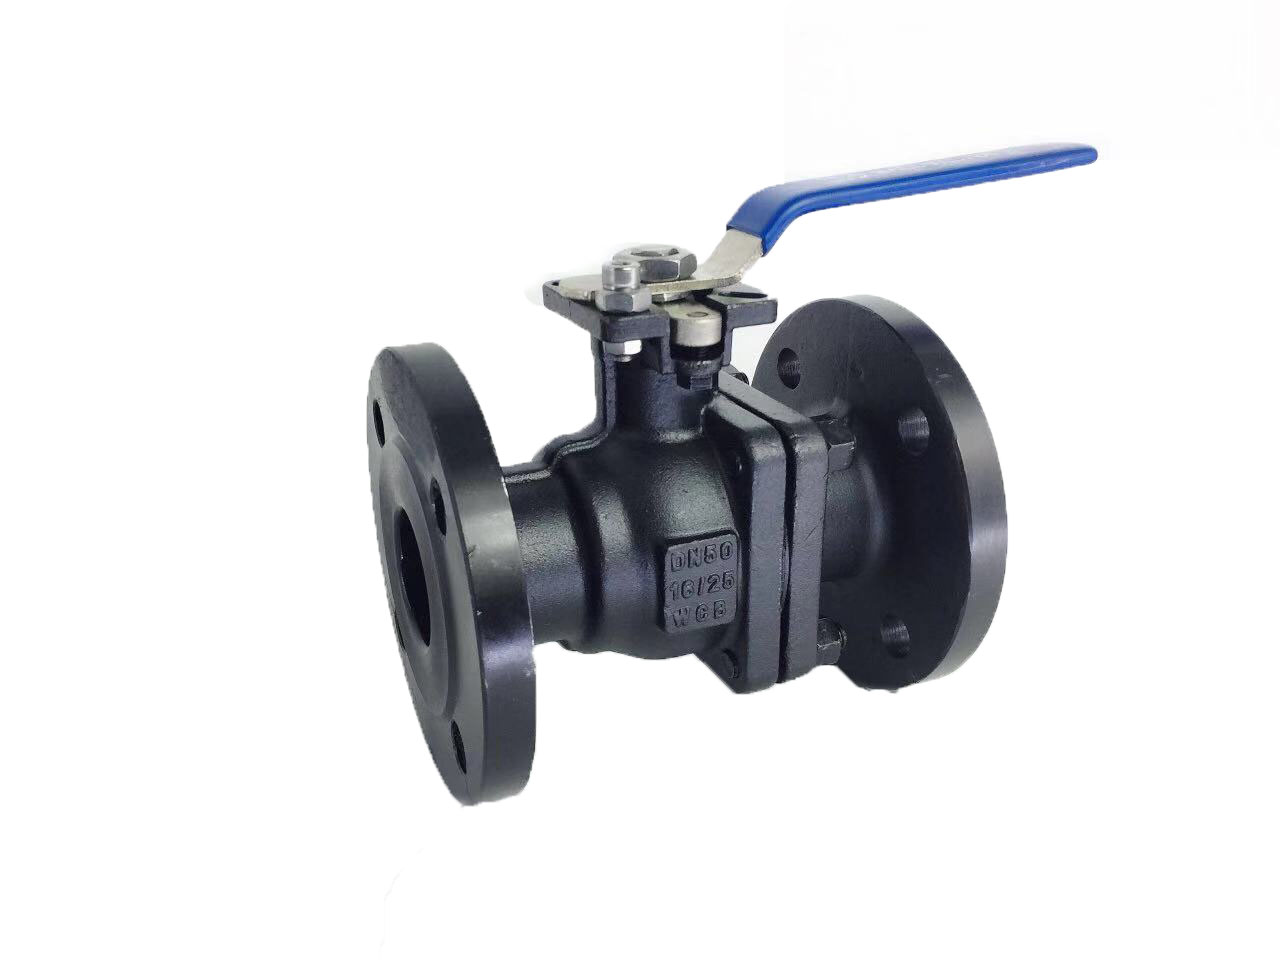 Flanged end, carbon steel body ball valve